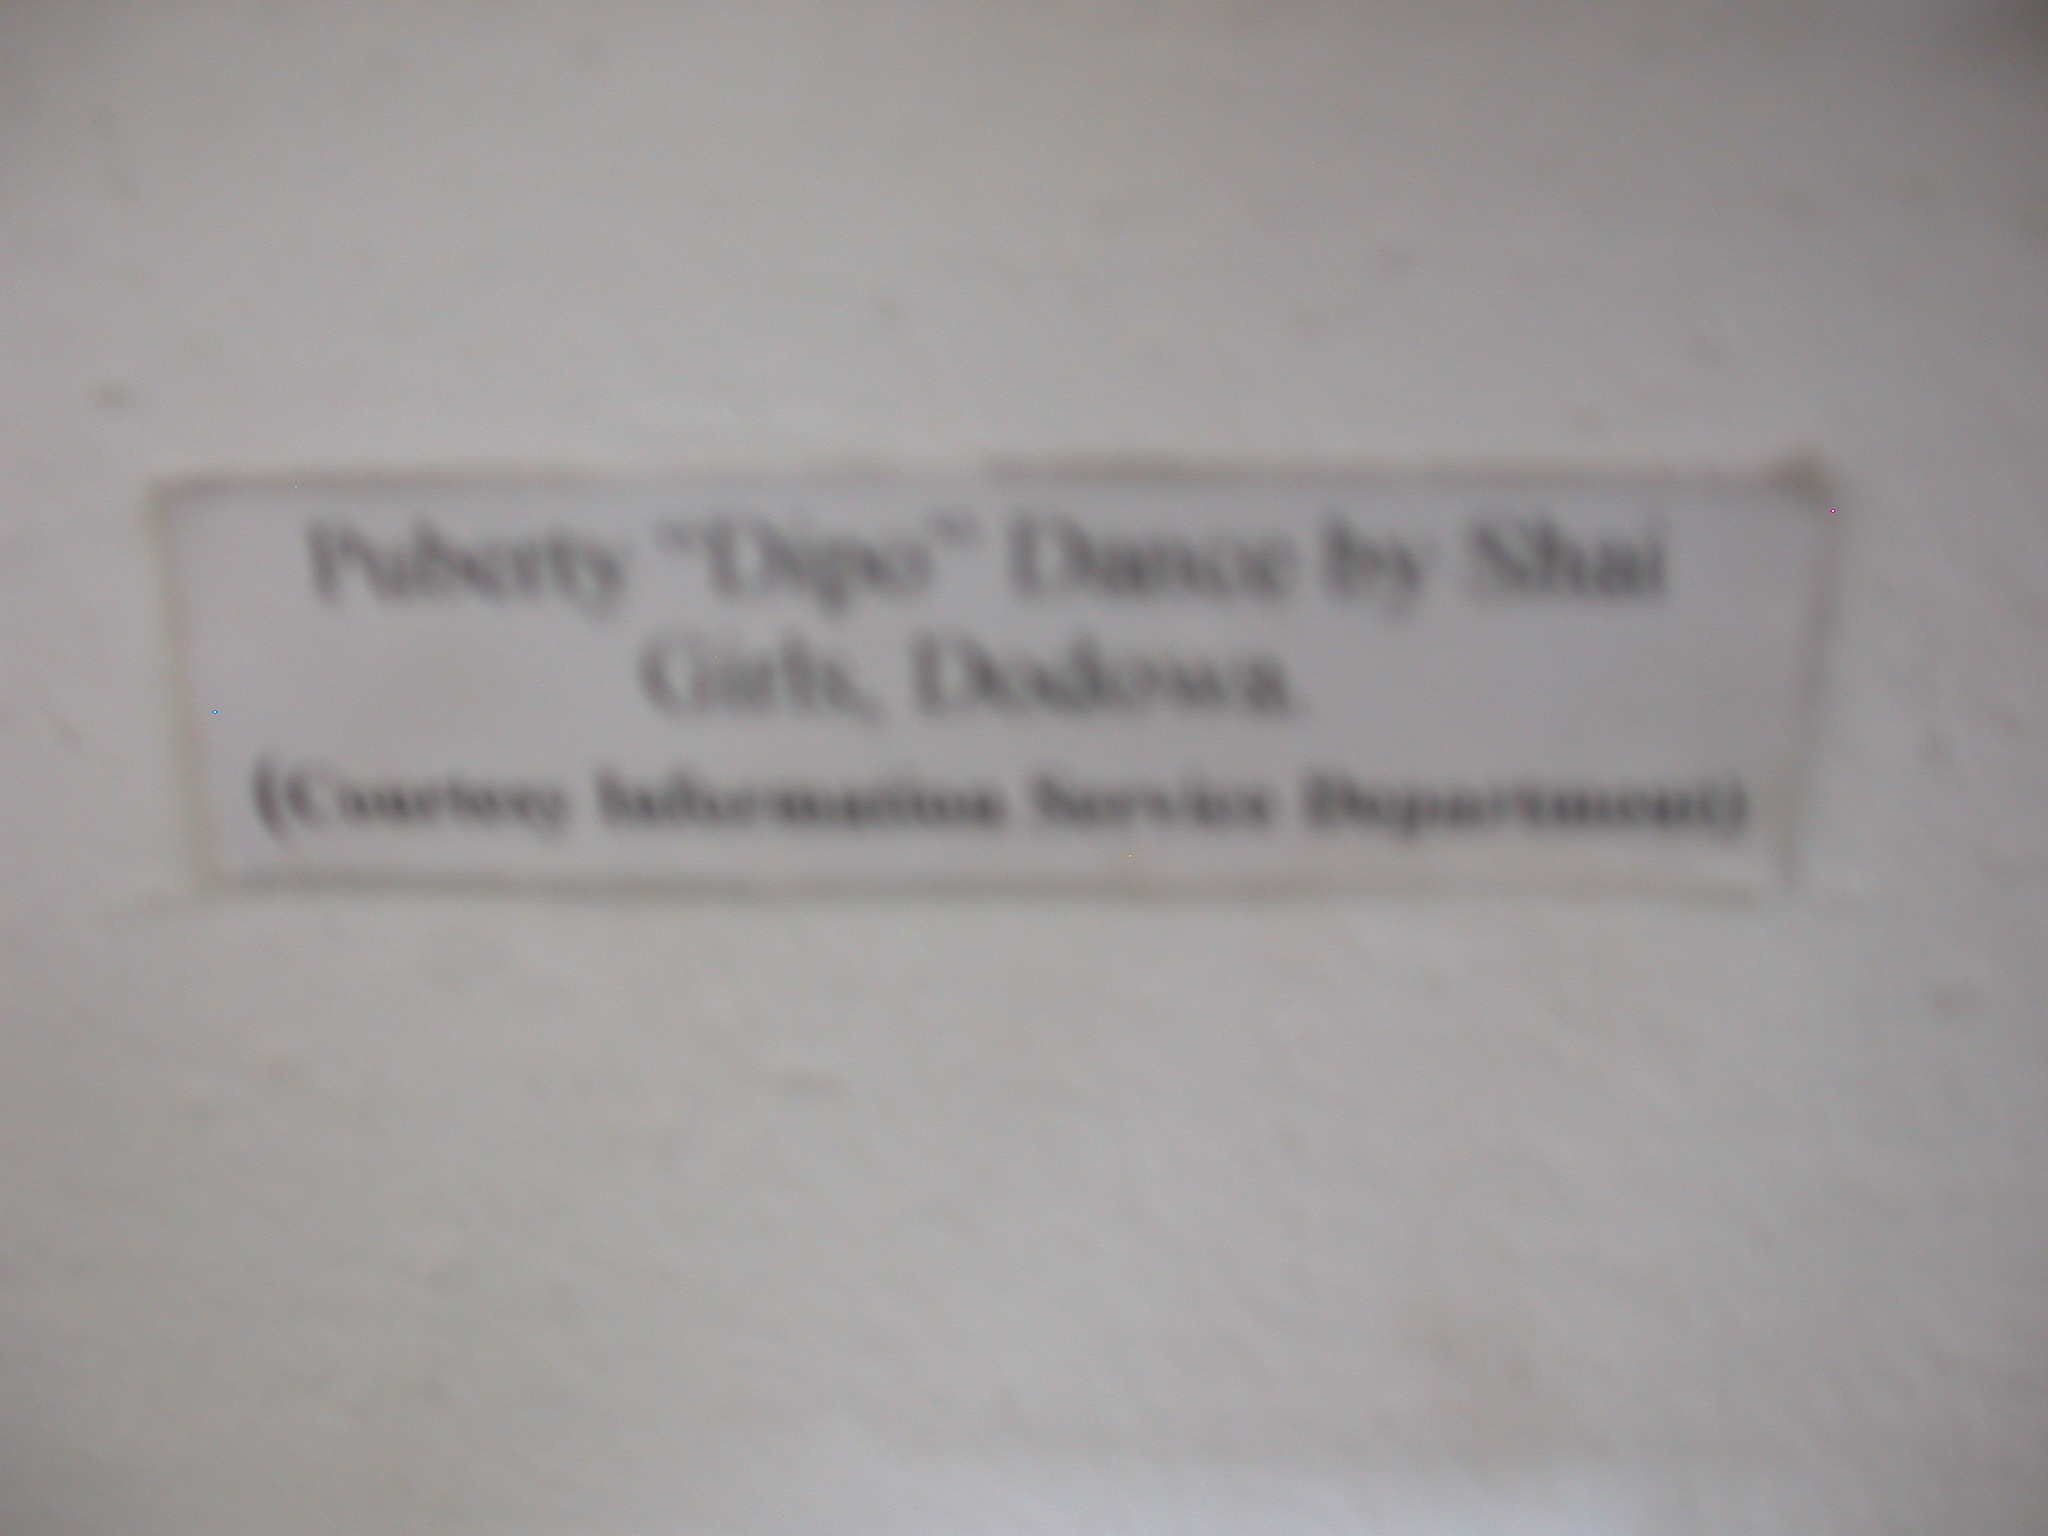 Label for Picture of Puberty Dance by Shai Girls, National Musem, Accra, Ghana